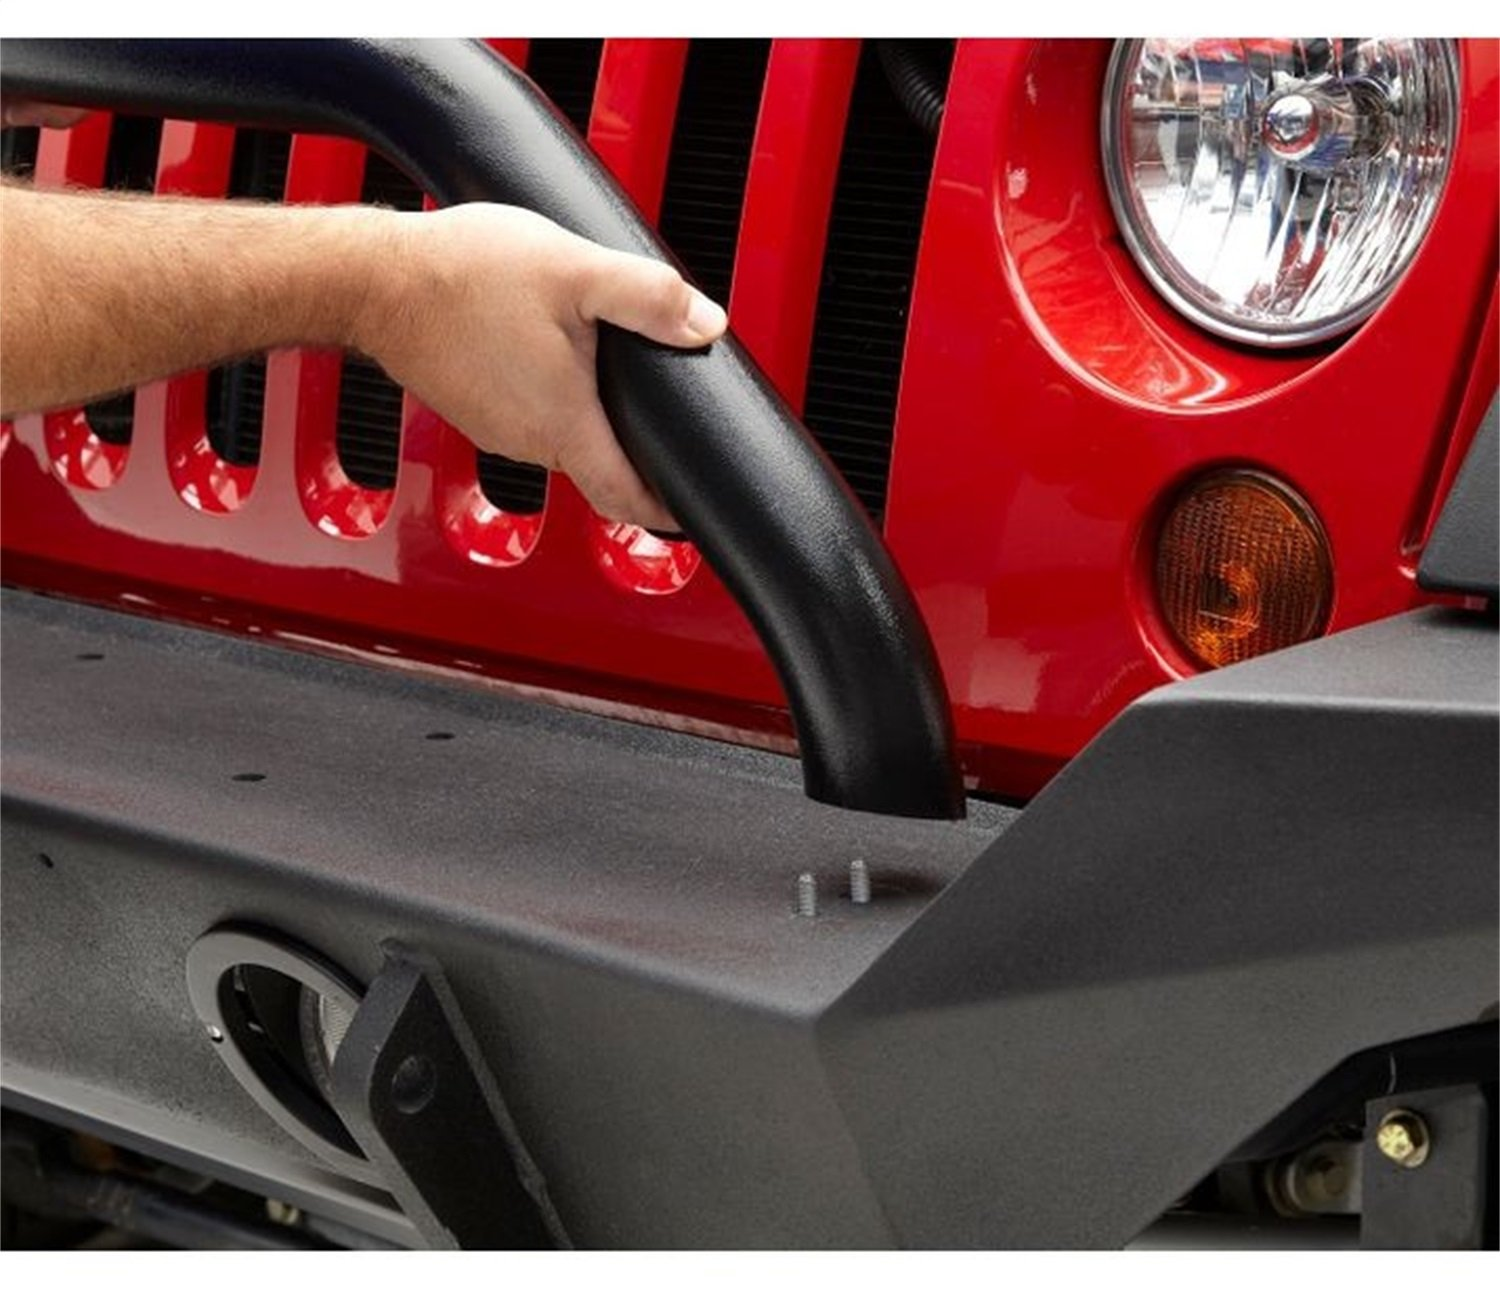 Bestop 44915-01 (HighRock 4x4) Matte Black Grill Guard